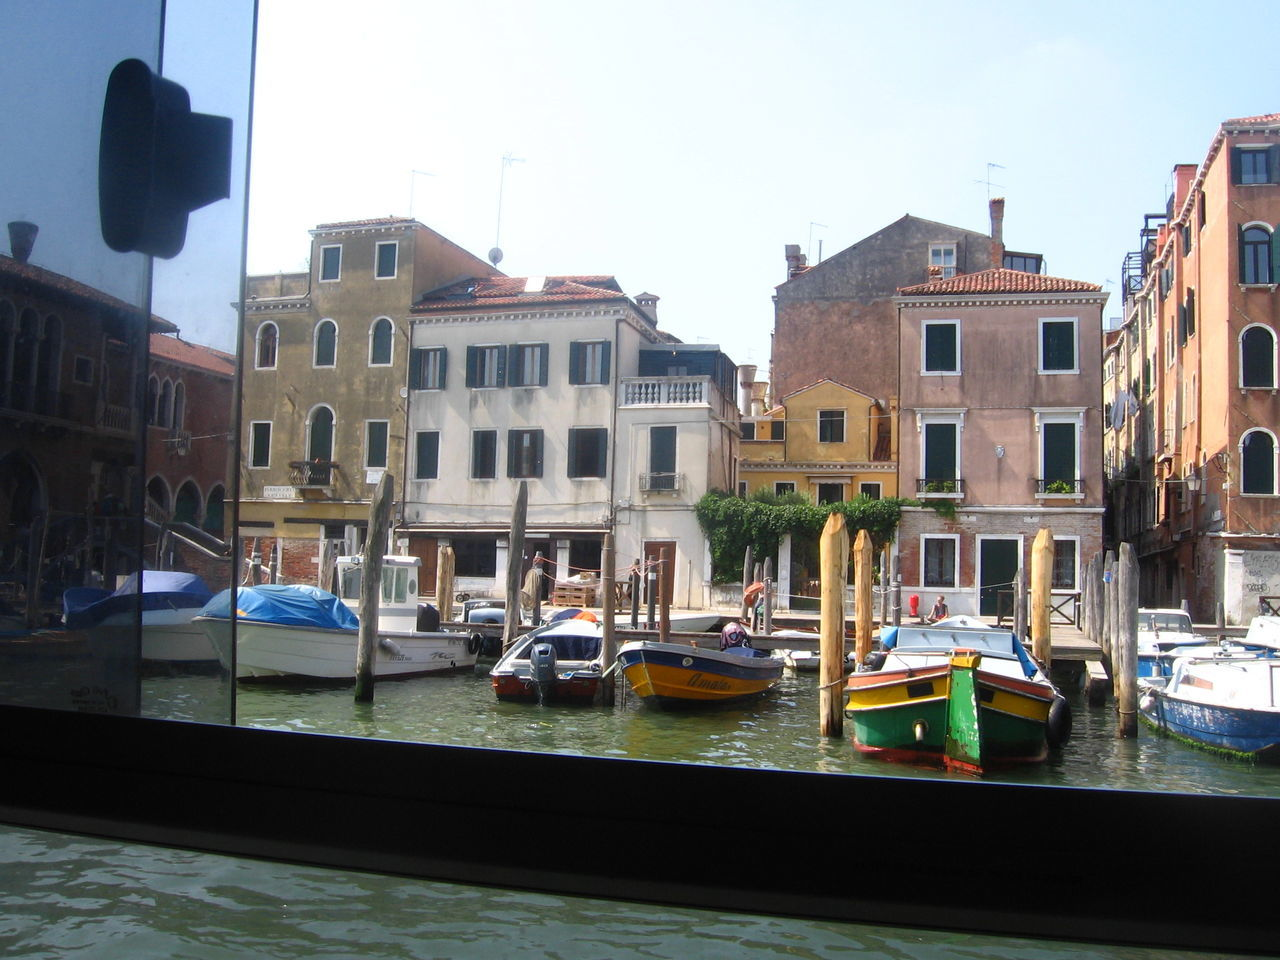 Boats On Canal Against Buildings In City